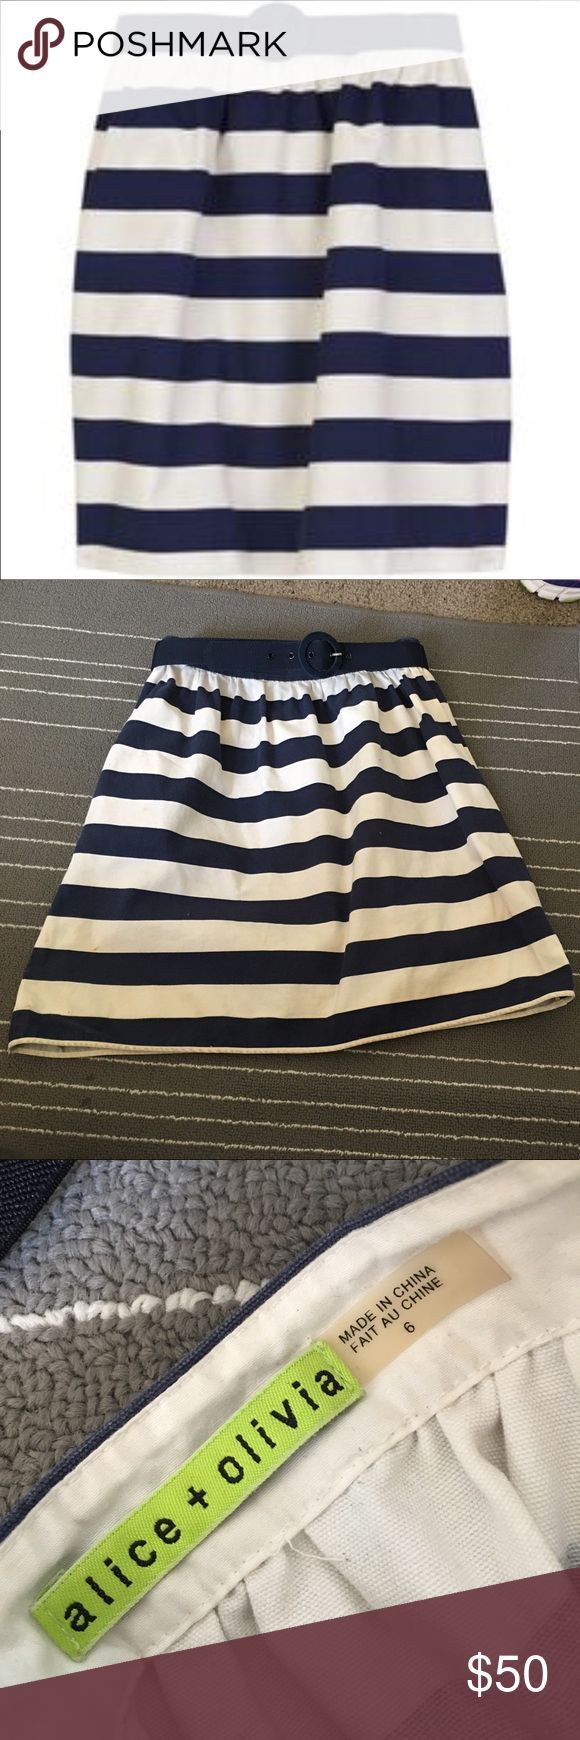 Alice and Olive Nautical skirt ALICE AND OLIVIA nautical themed skirt with belt and 💥POCKETS 💥 gently worn. I've had it for awhile and it's held up very well. It's very well made. Great piece for your summer wardrobe. Alice & Olivia Skirts Mini